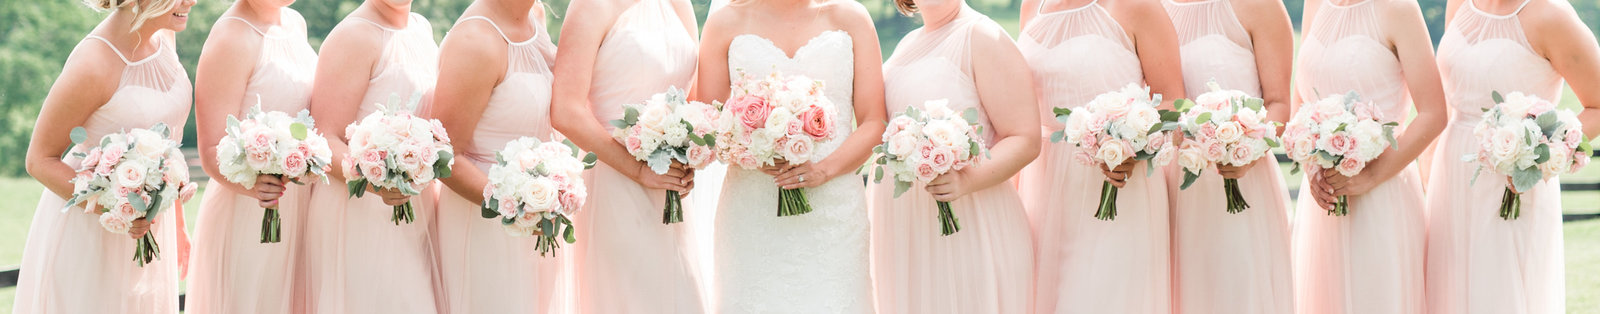 shadow-creek-blush-northern-virginia-wedding-by-va-wedding-photographer-photo64